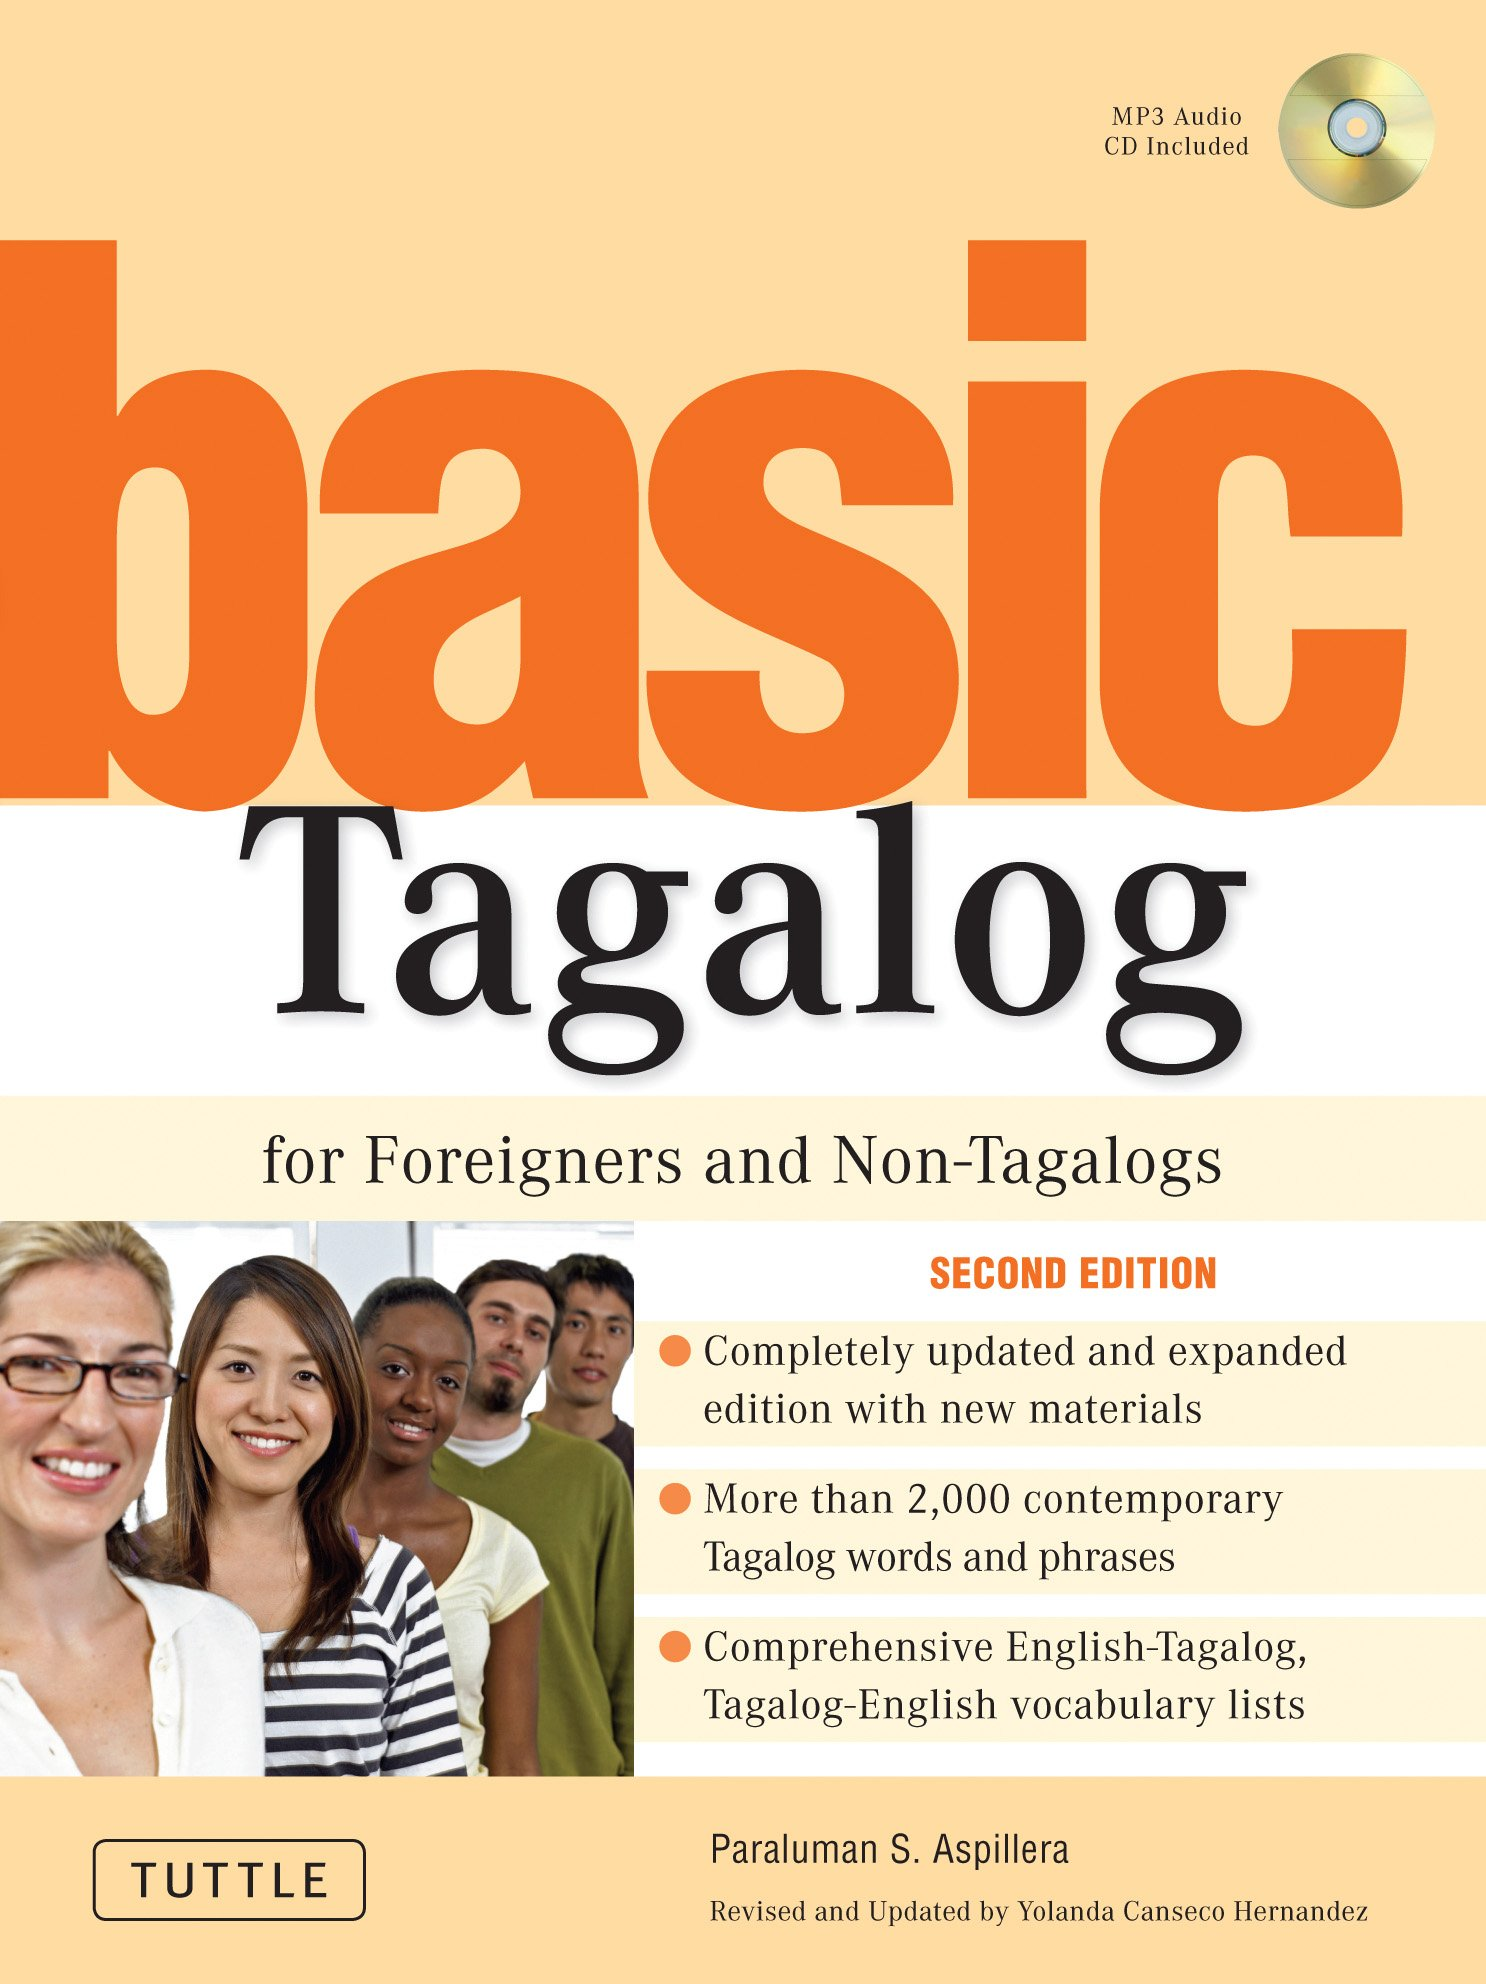 Basic Tagalog For Foreigners And Non Tagalogs   MP3 Audio CD Included   Tuttle Language Library